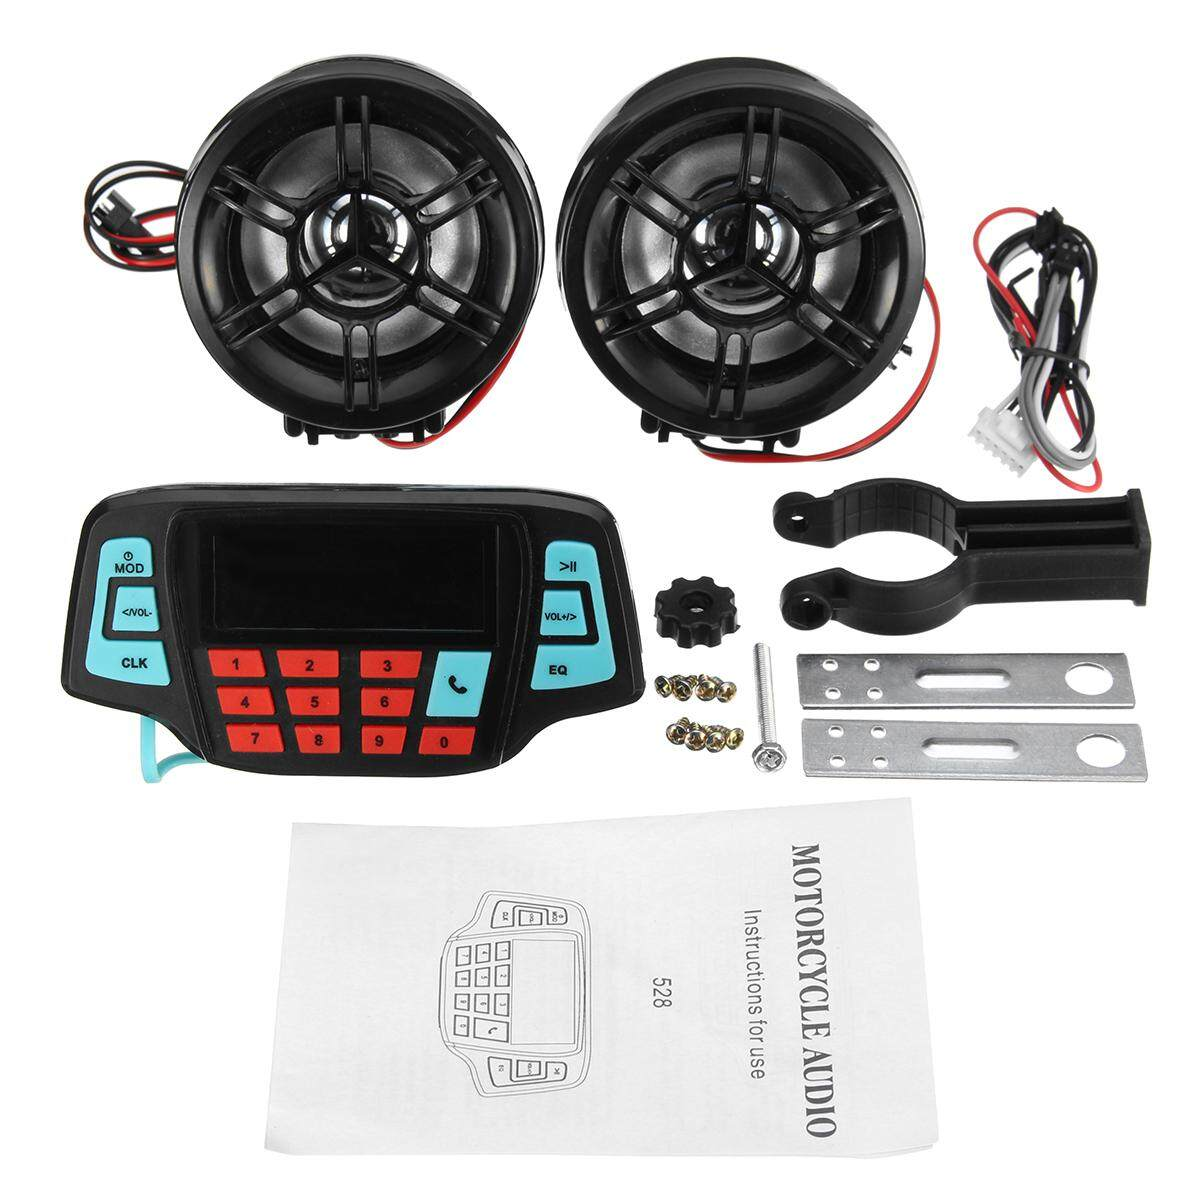 Motorcycle Speakers For Sale Audio Online Brands Outdoor Wiring Bluetooth Call Speaker Stereo With Lcd Screen Black Intl